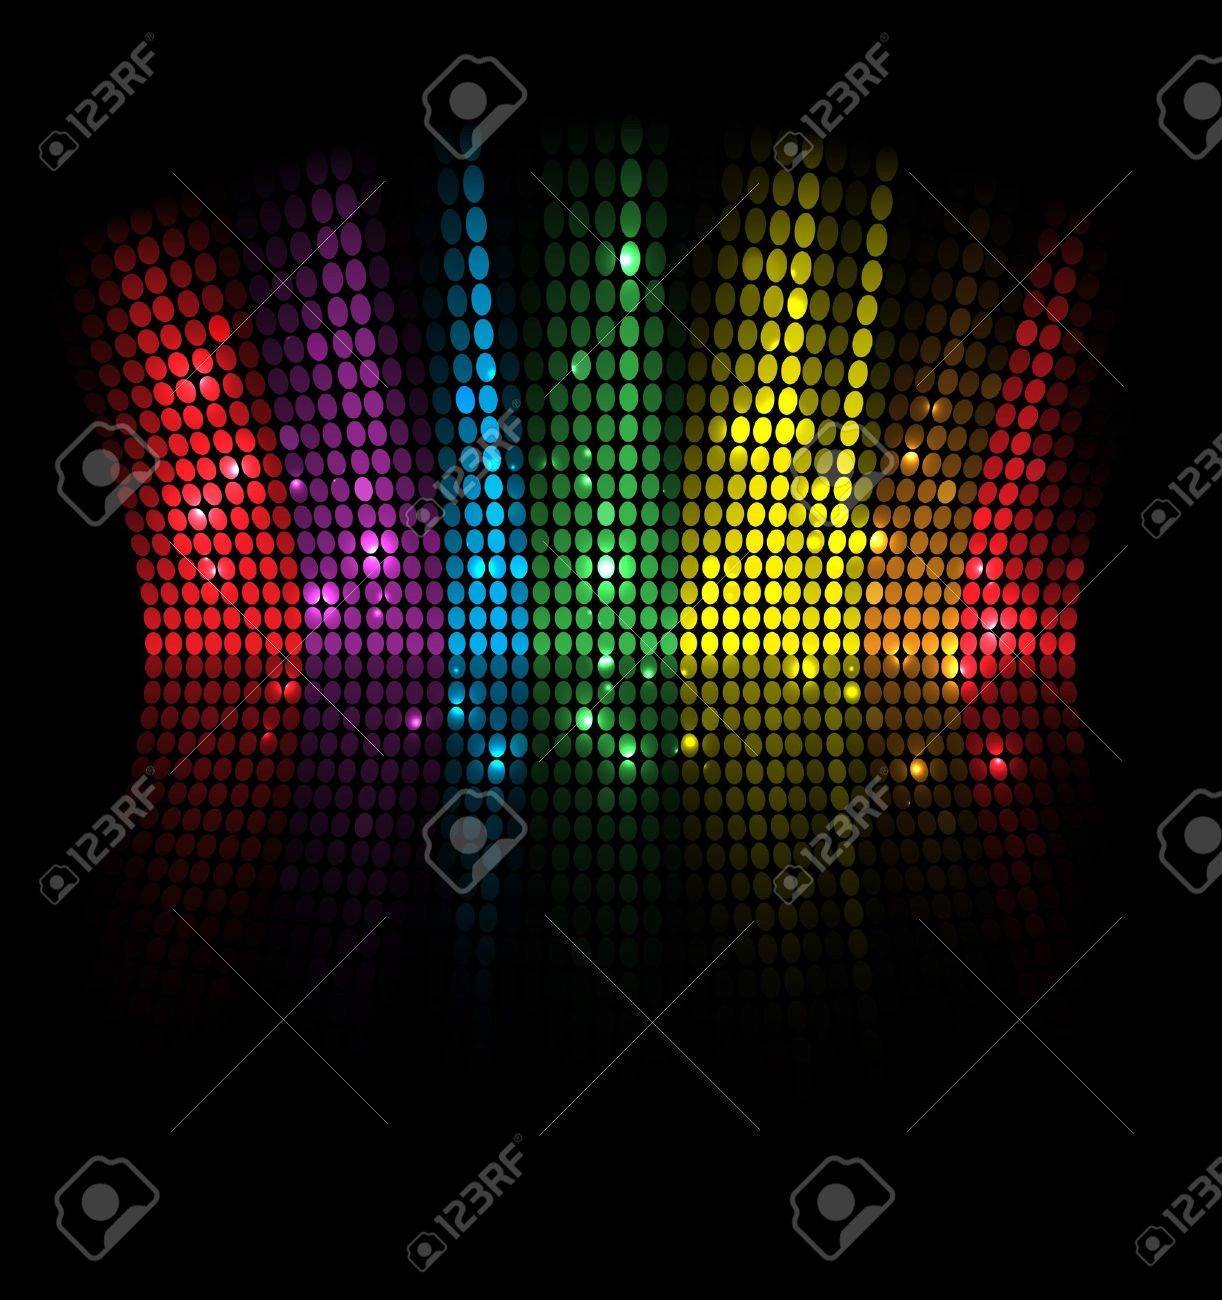 abstract music volume equalizer concept idea background - 15553777